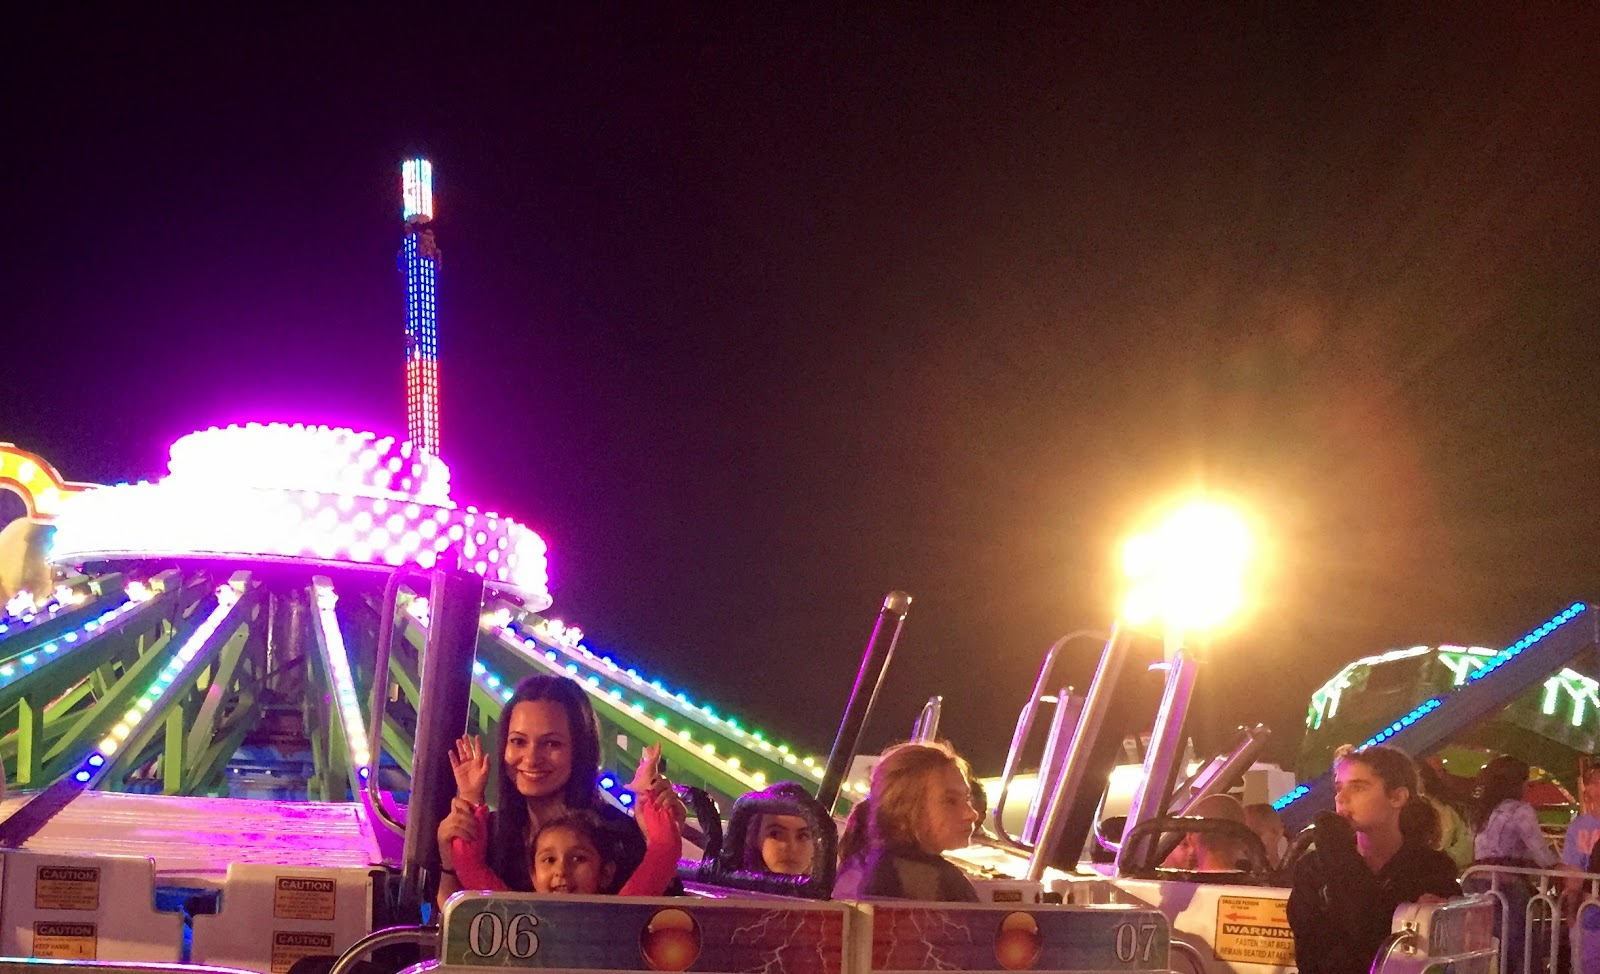 South Florida Fair 2015 food family rides music www.sandysandhu.co